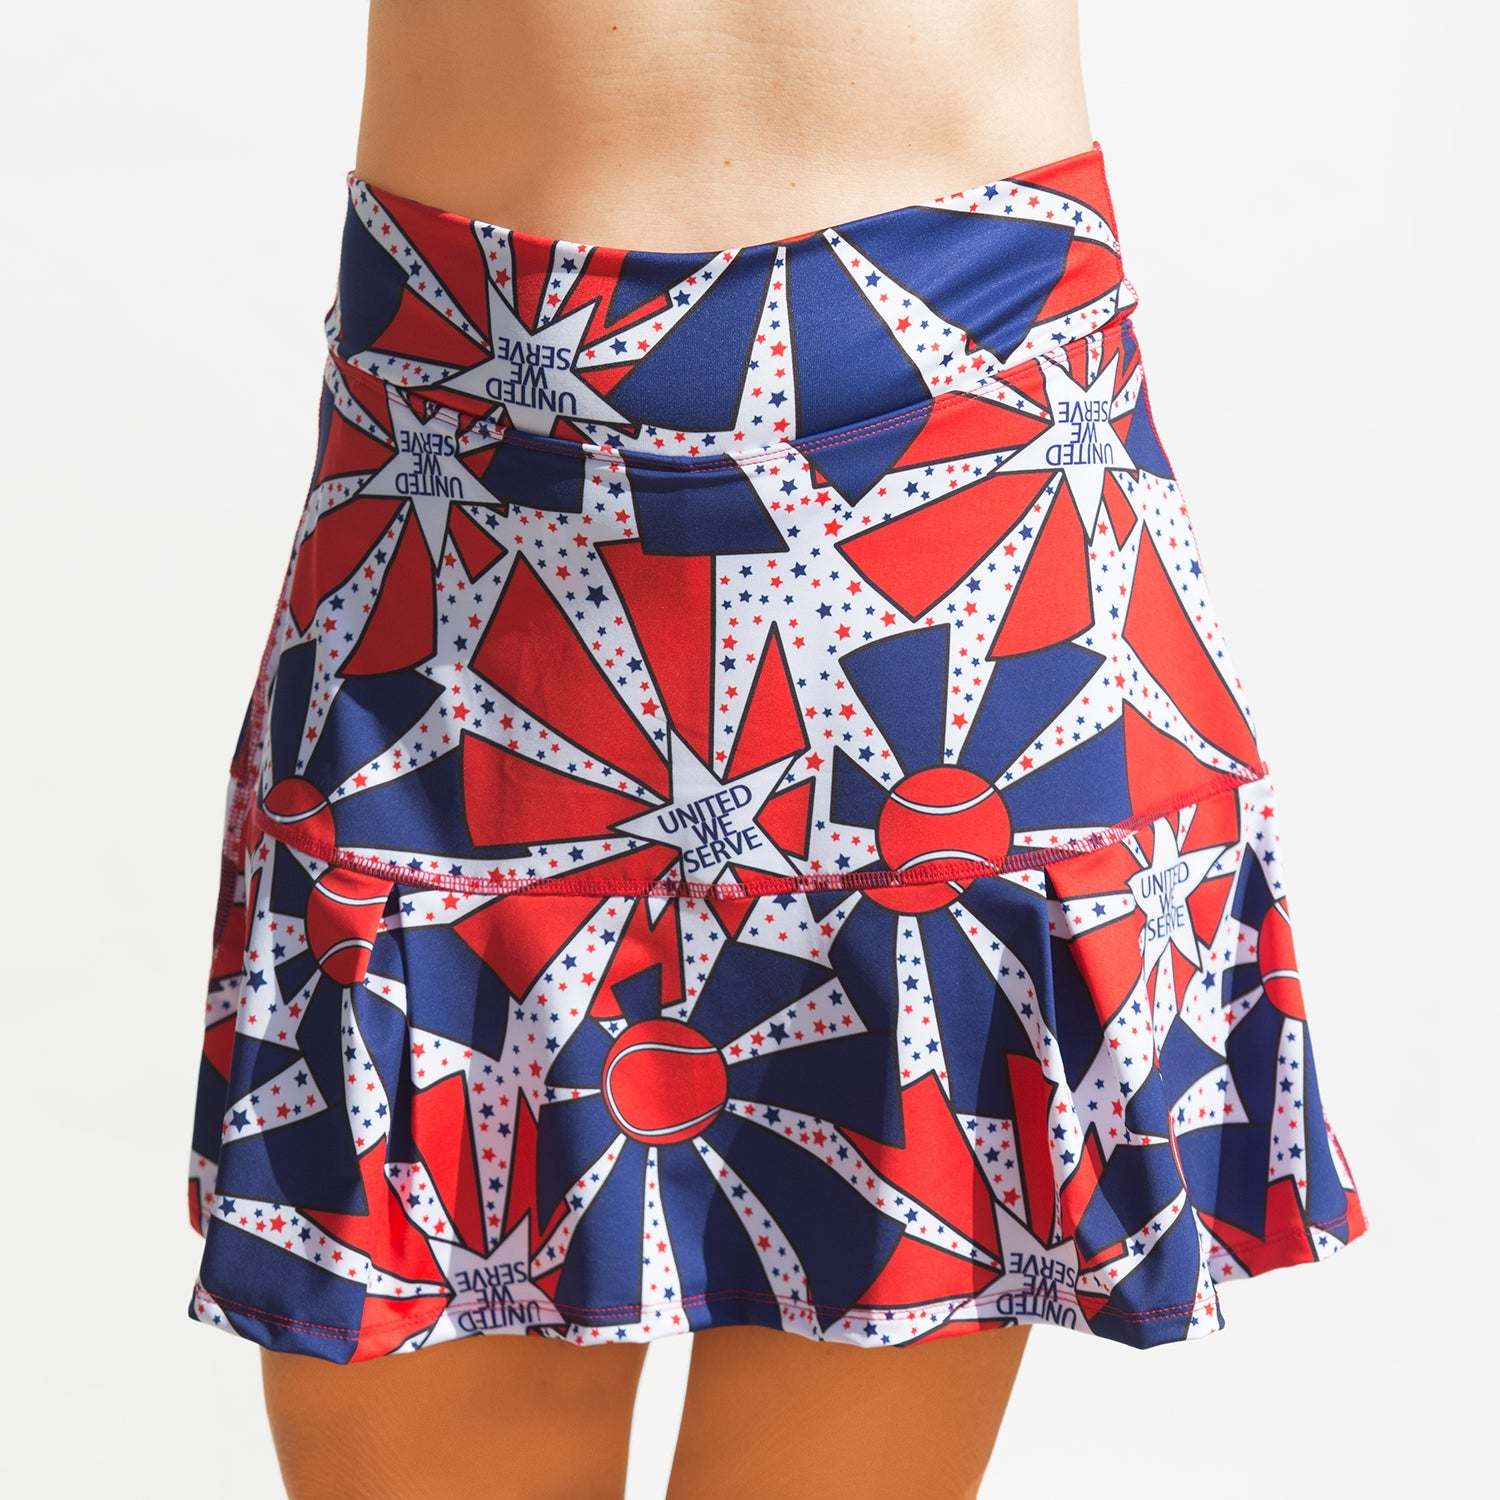 Tennis Bella United We Serve Kick-pleat Skort